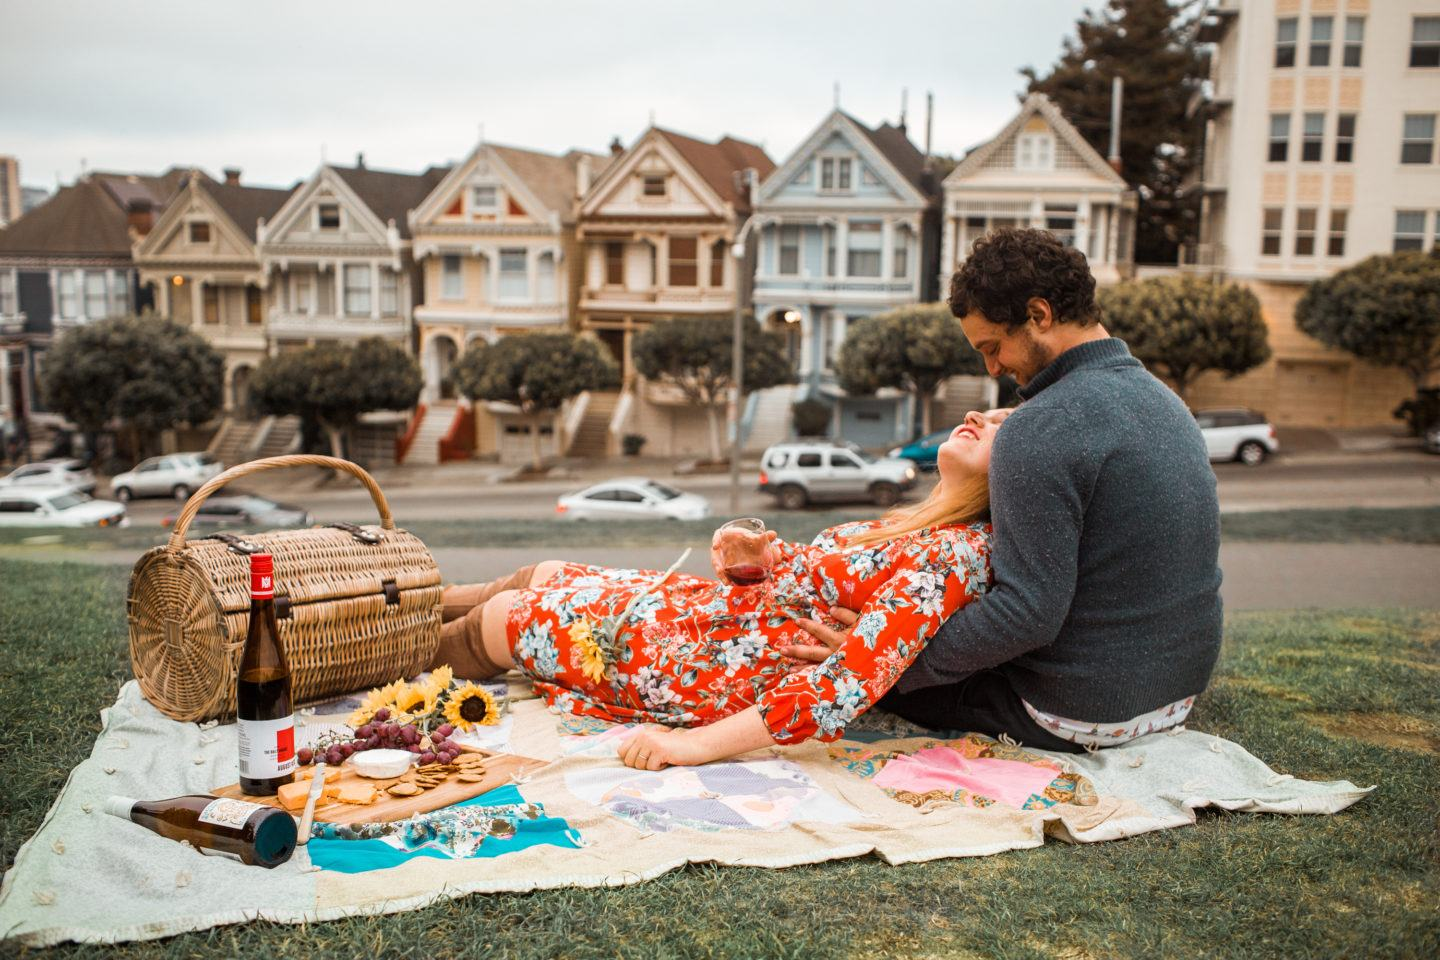 Our Cute AF Picnic with German Wines at the Painted Ladies